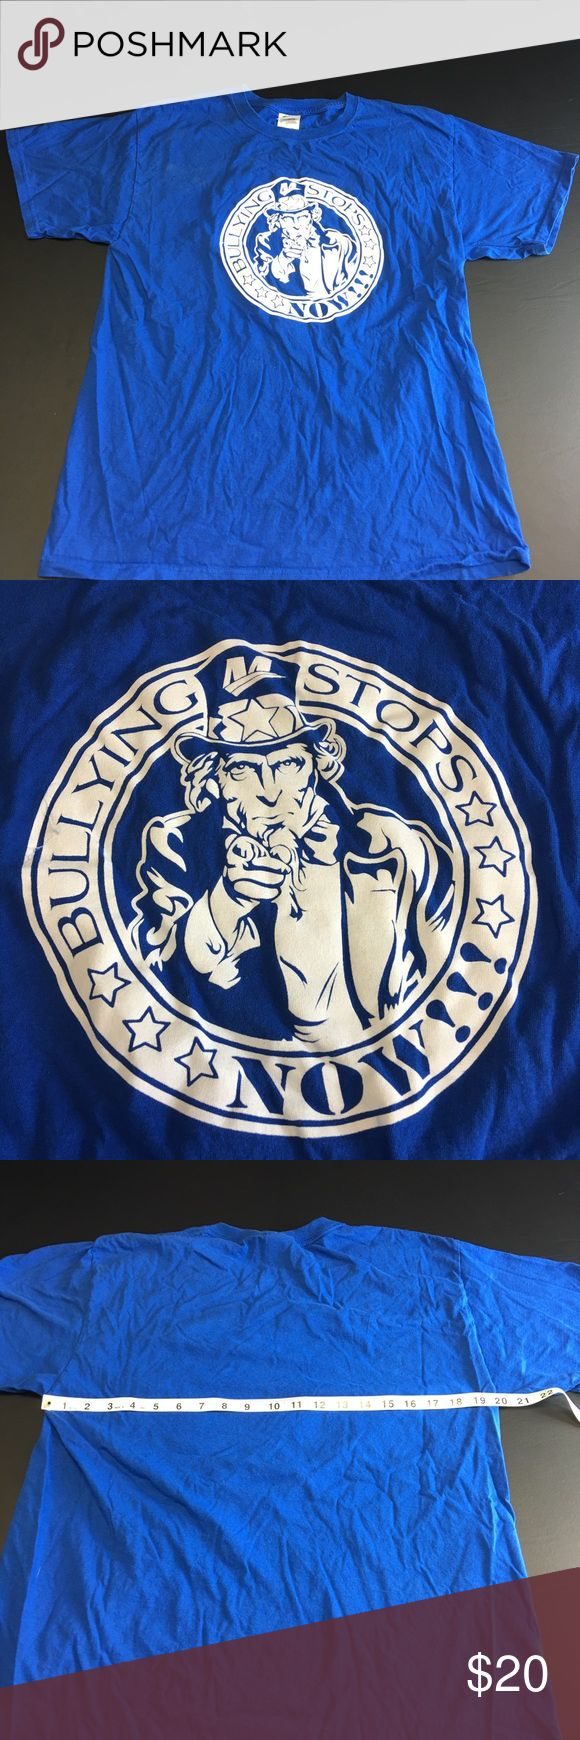 Vintage Uncle Sam Stop Bullying Now Men's Large T Vintage Blue Uncle Sam Stop Bullying Now Men's Large Teeshirt. Very soft preowned Teeshirt in excellent condition with no major flaws. Measurements are as follows: Pit to Pit Measures 20 Inches and Top to Bottom Measures 28 Inches. Vintage Shirts Tees - Short Sleeve